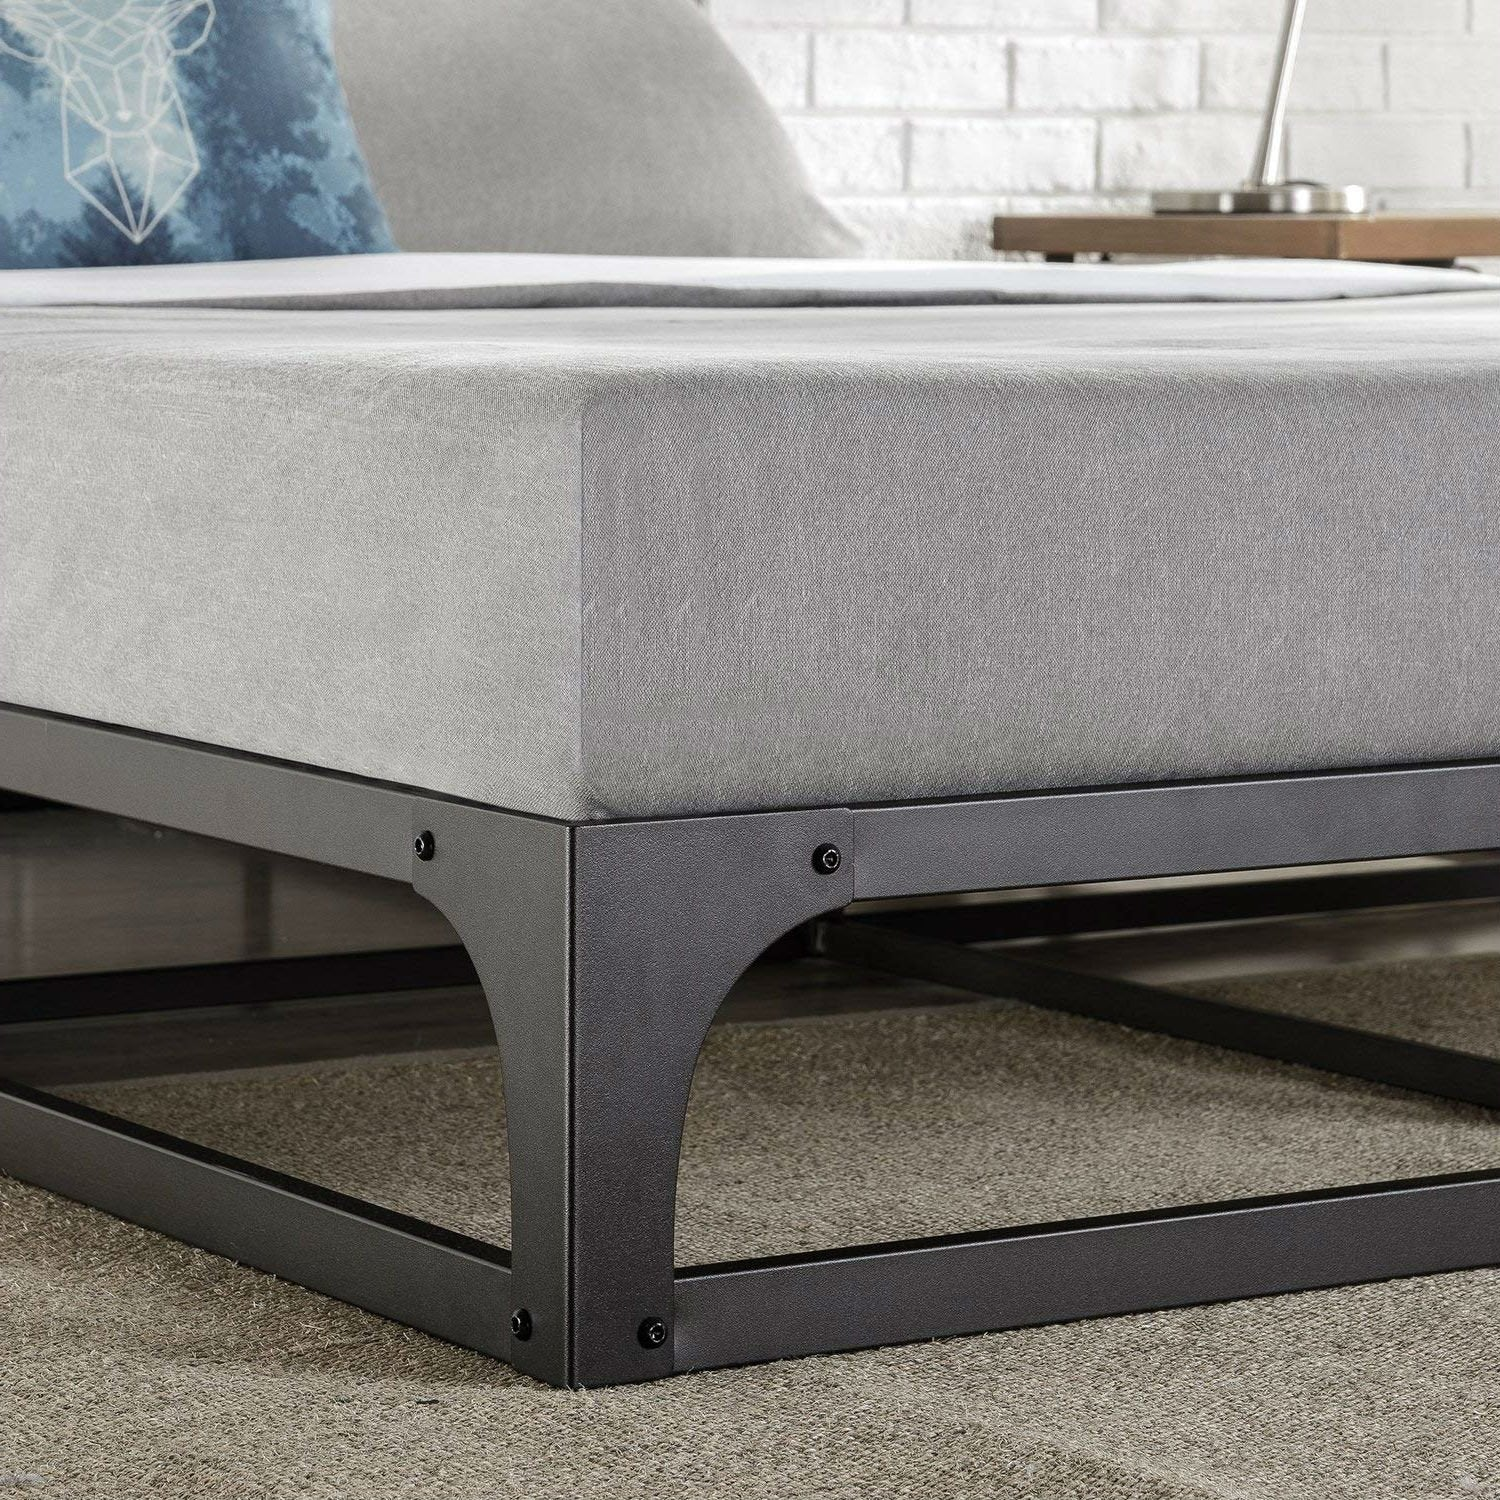 Full size Modern Low Profile Heavy Duty Metal Platform Bed Frame